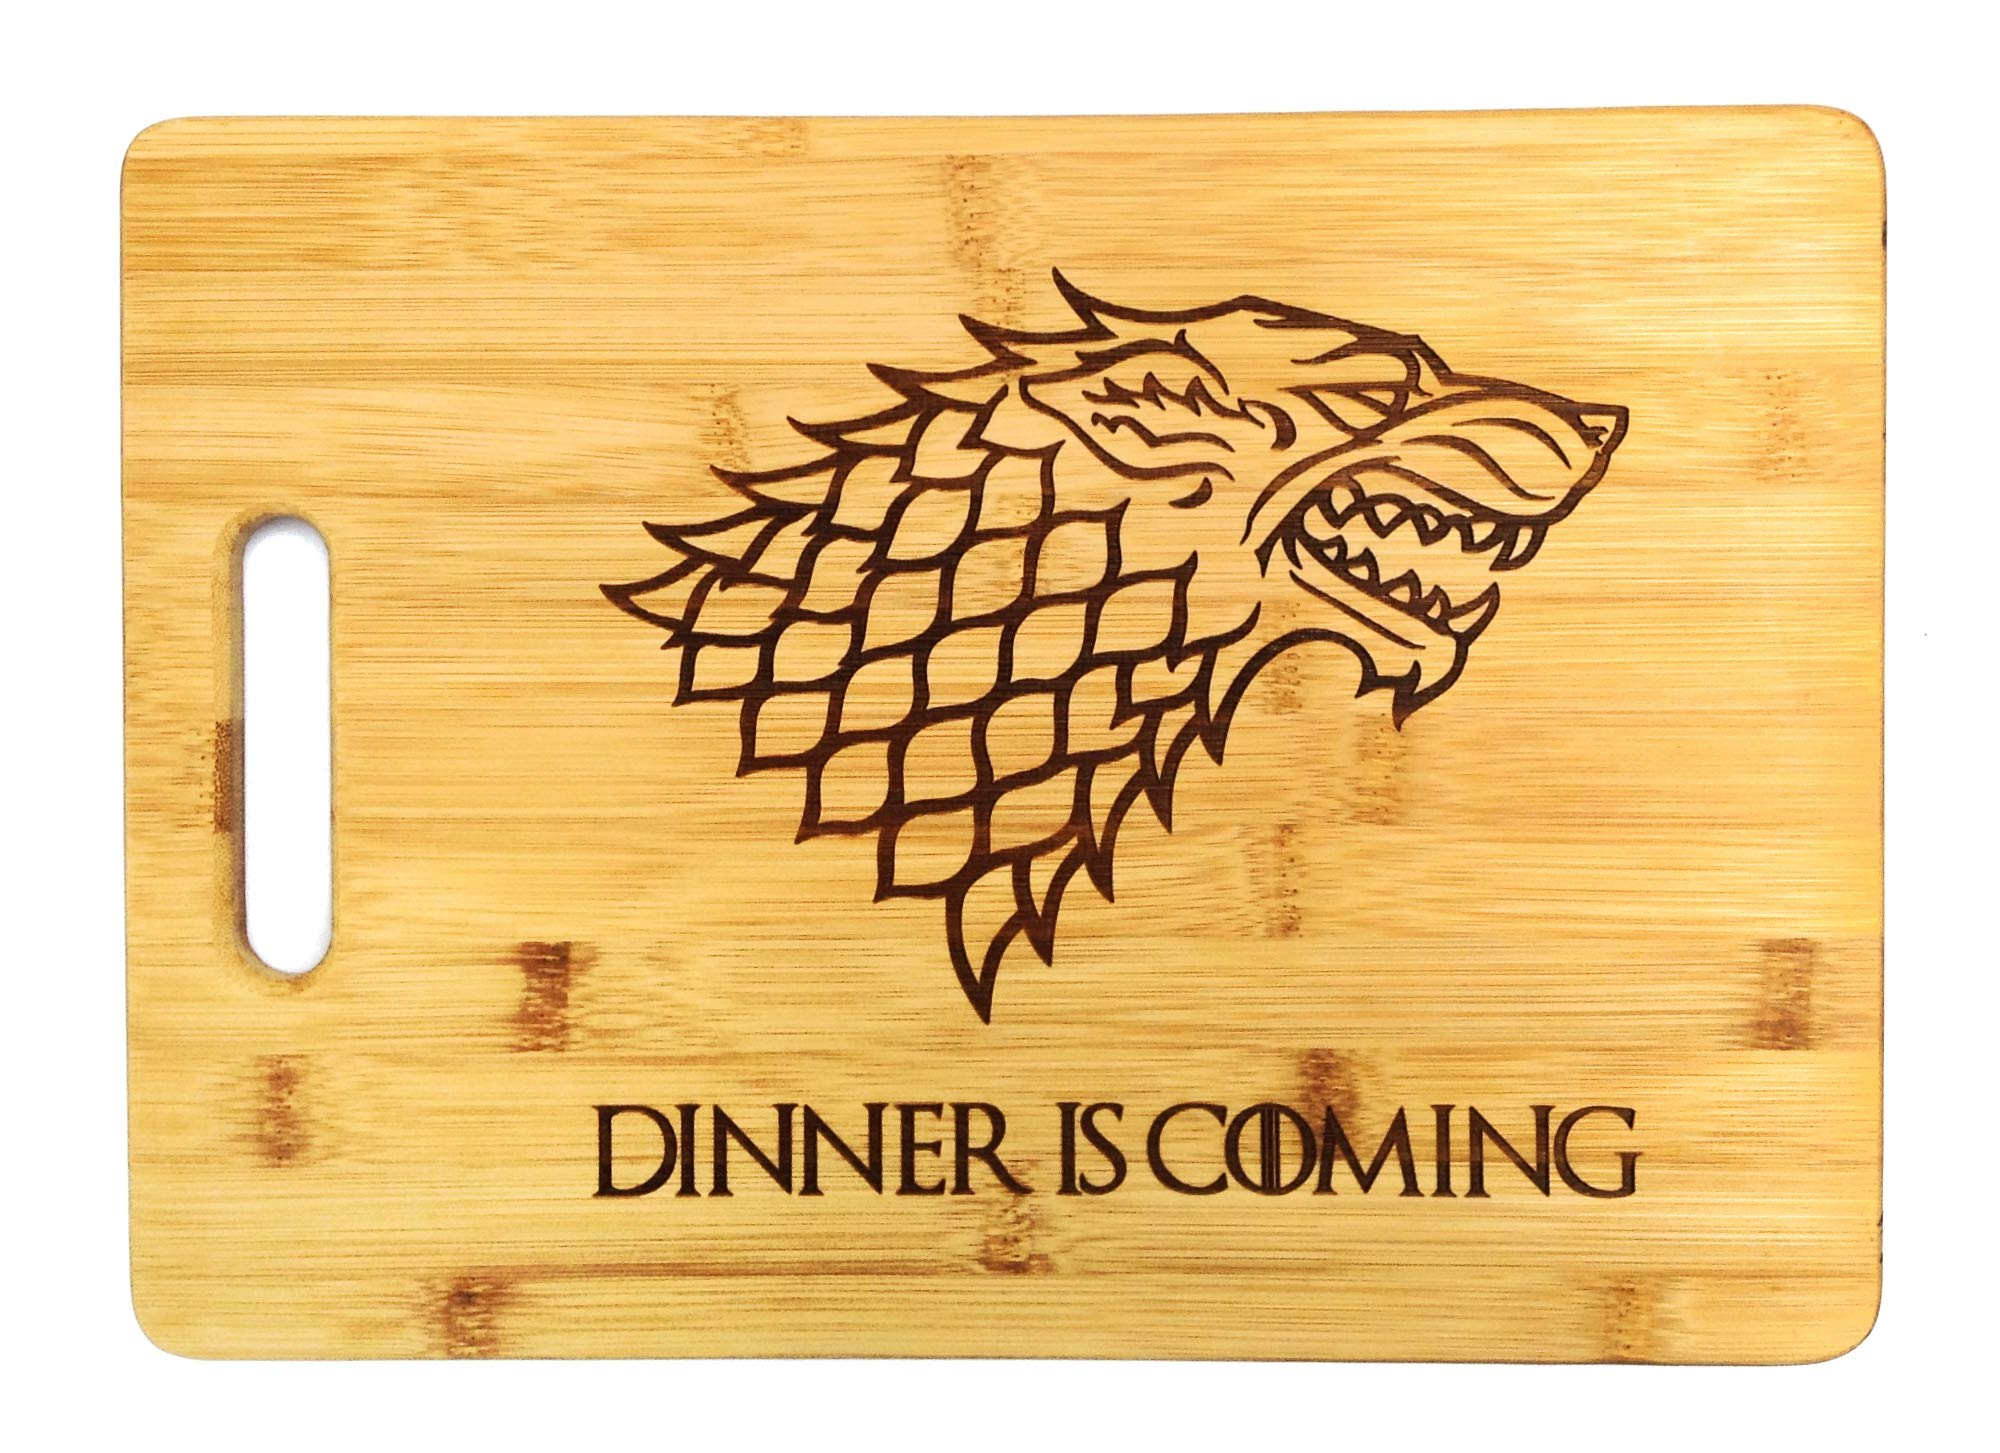 Dinner is Coming Cutting Board, 13 3/4'' x 9 3/4'', Laser Engraved Bamboo, Funny Gift Item